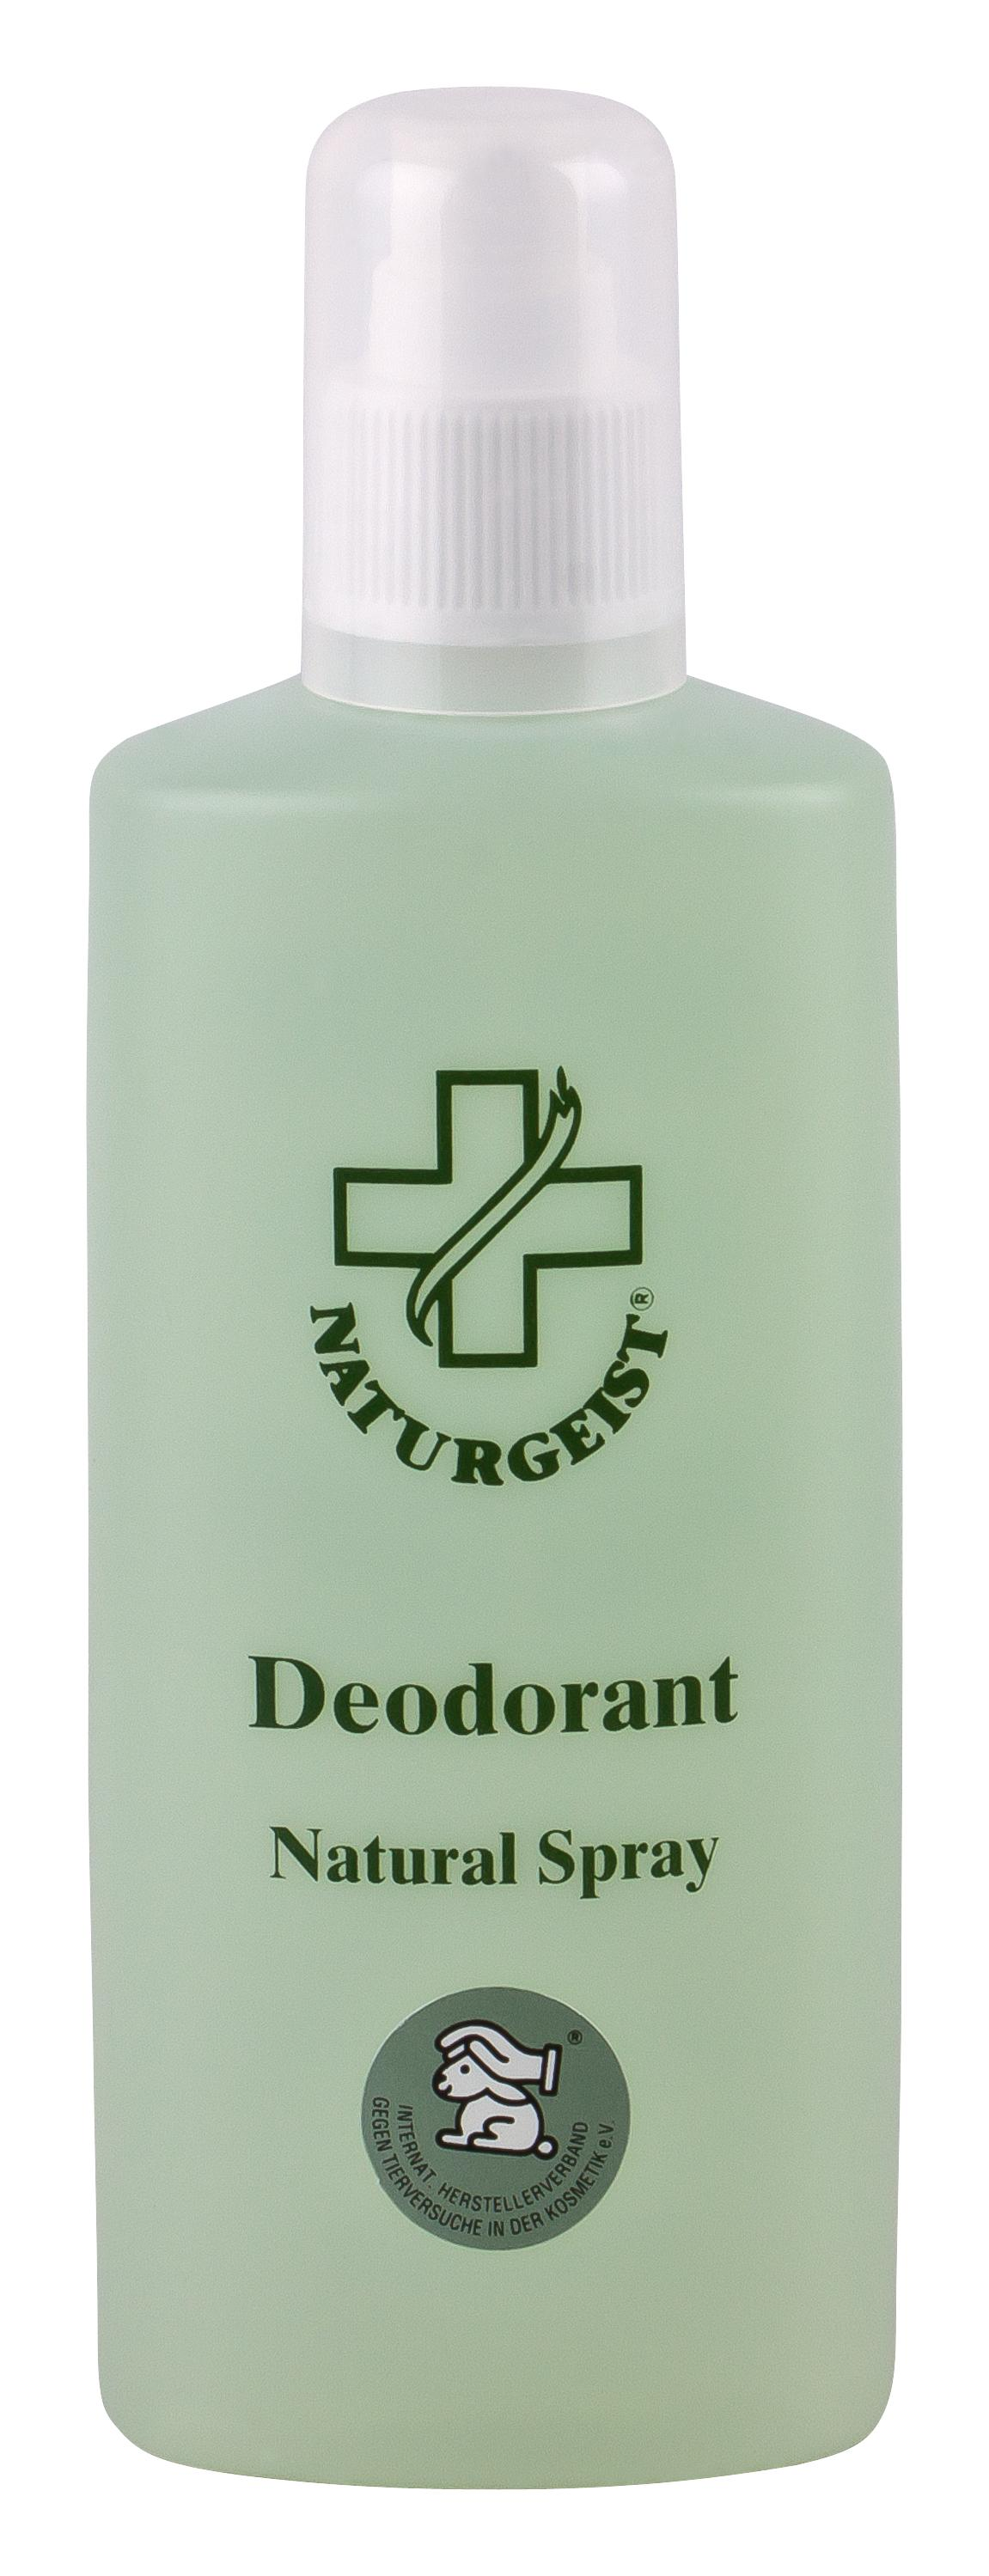 www.shop-of-beauty.de - Deodorant-Spray natural